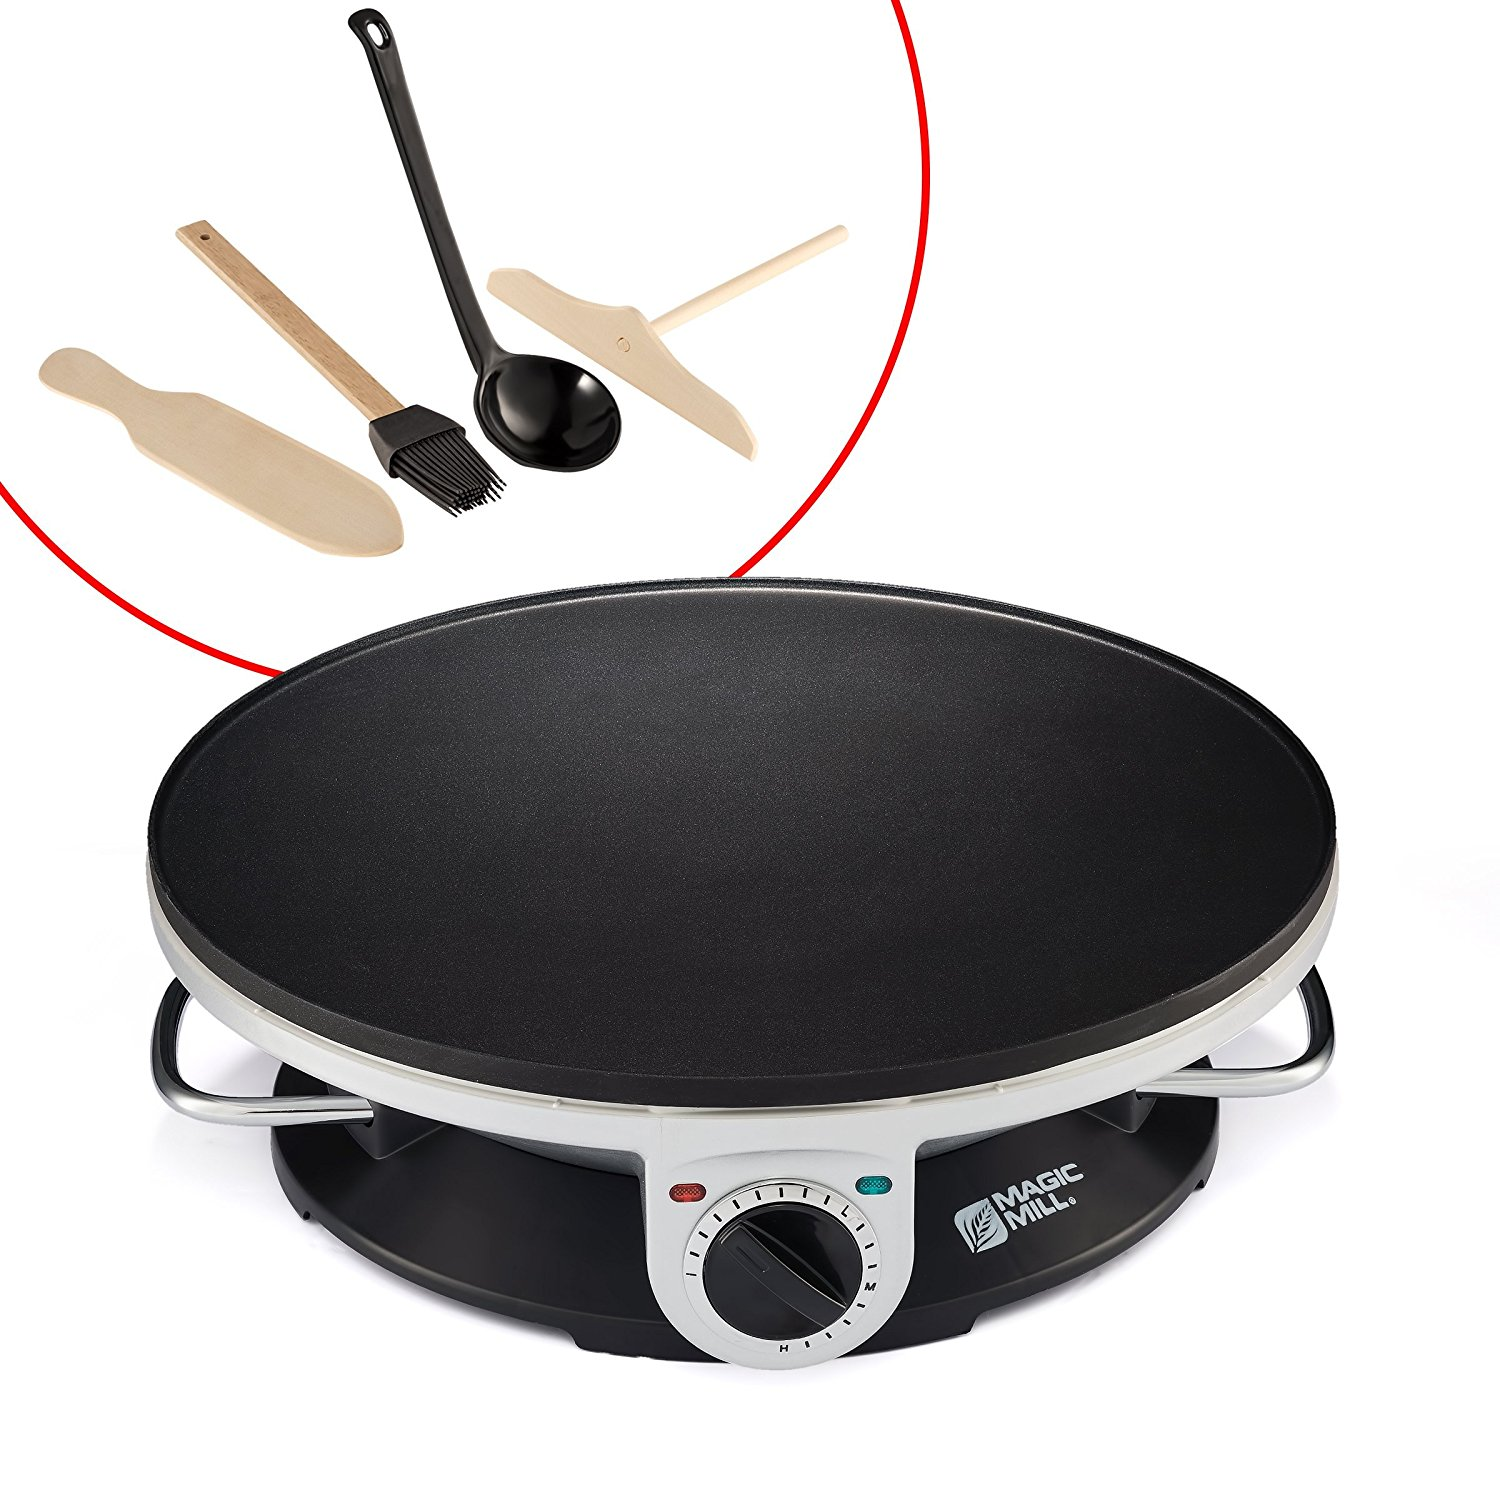 Amazon Cucinapro Best 4 Electric Griddle And Crepe Maker Read Before Buy Homeindec